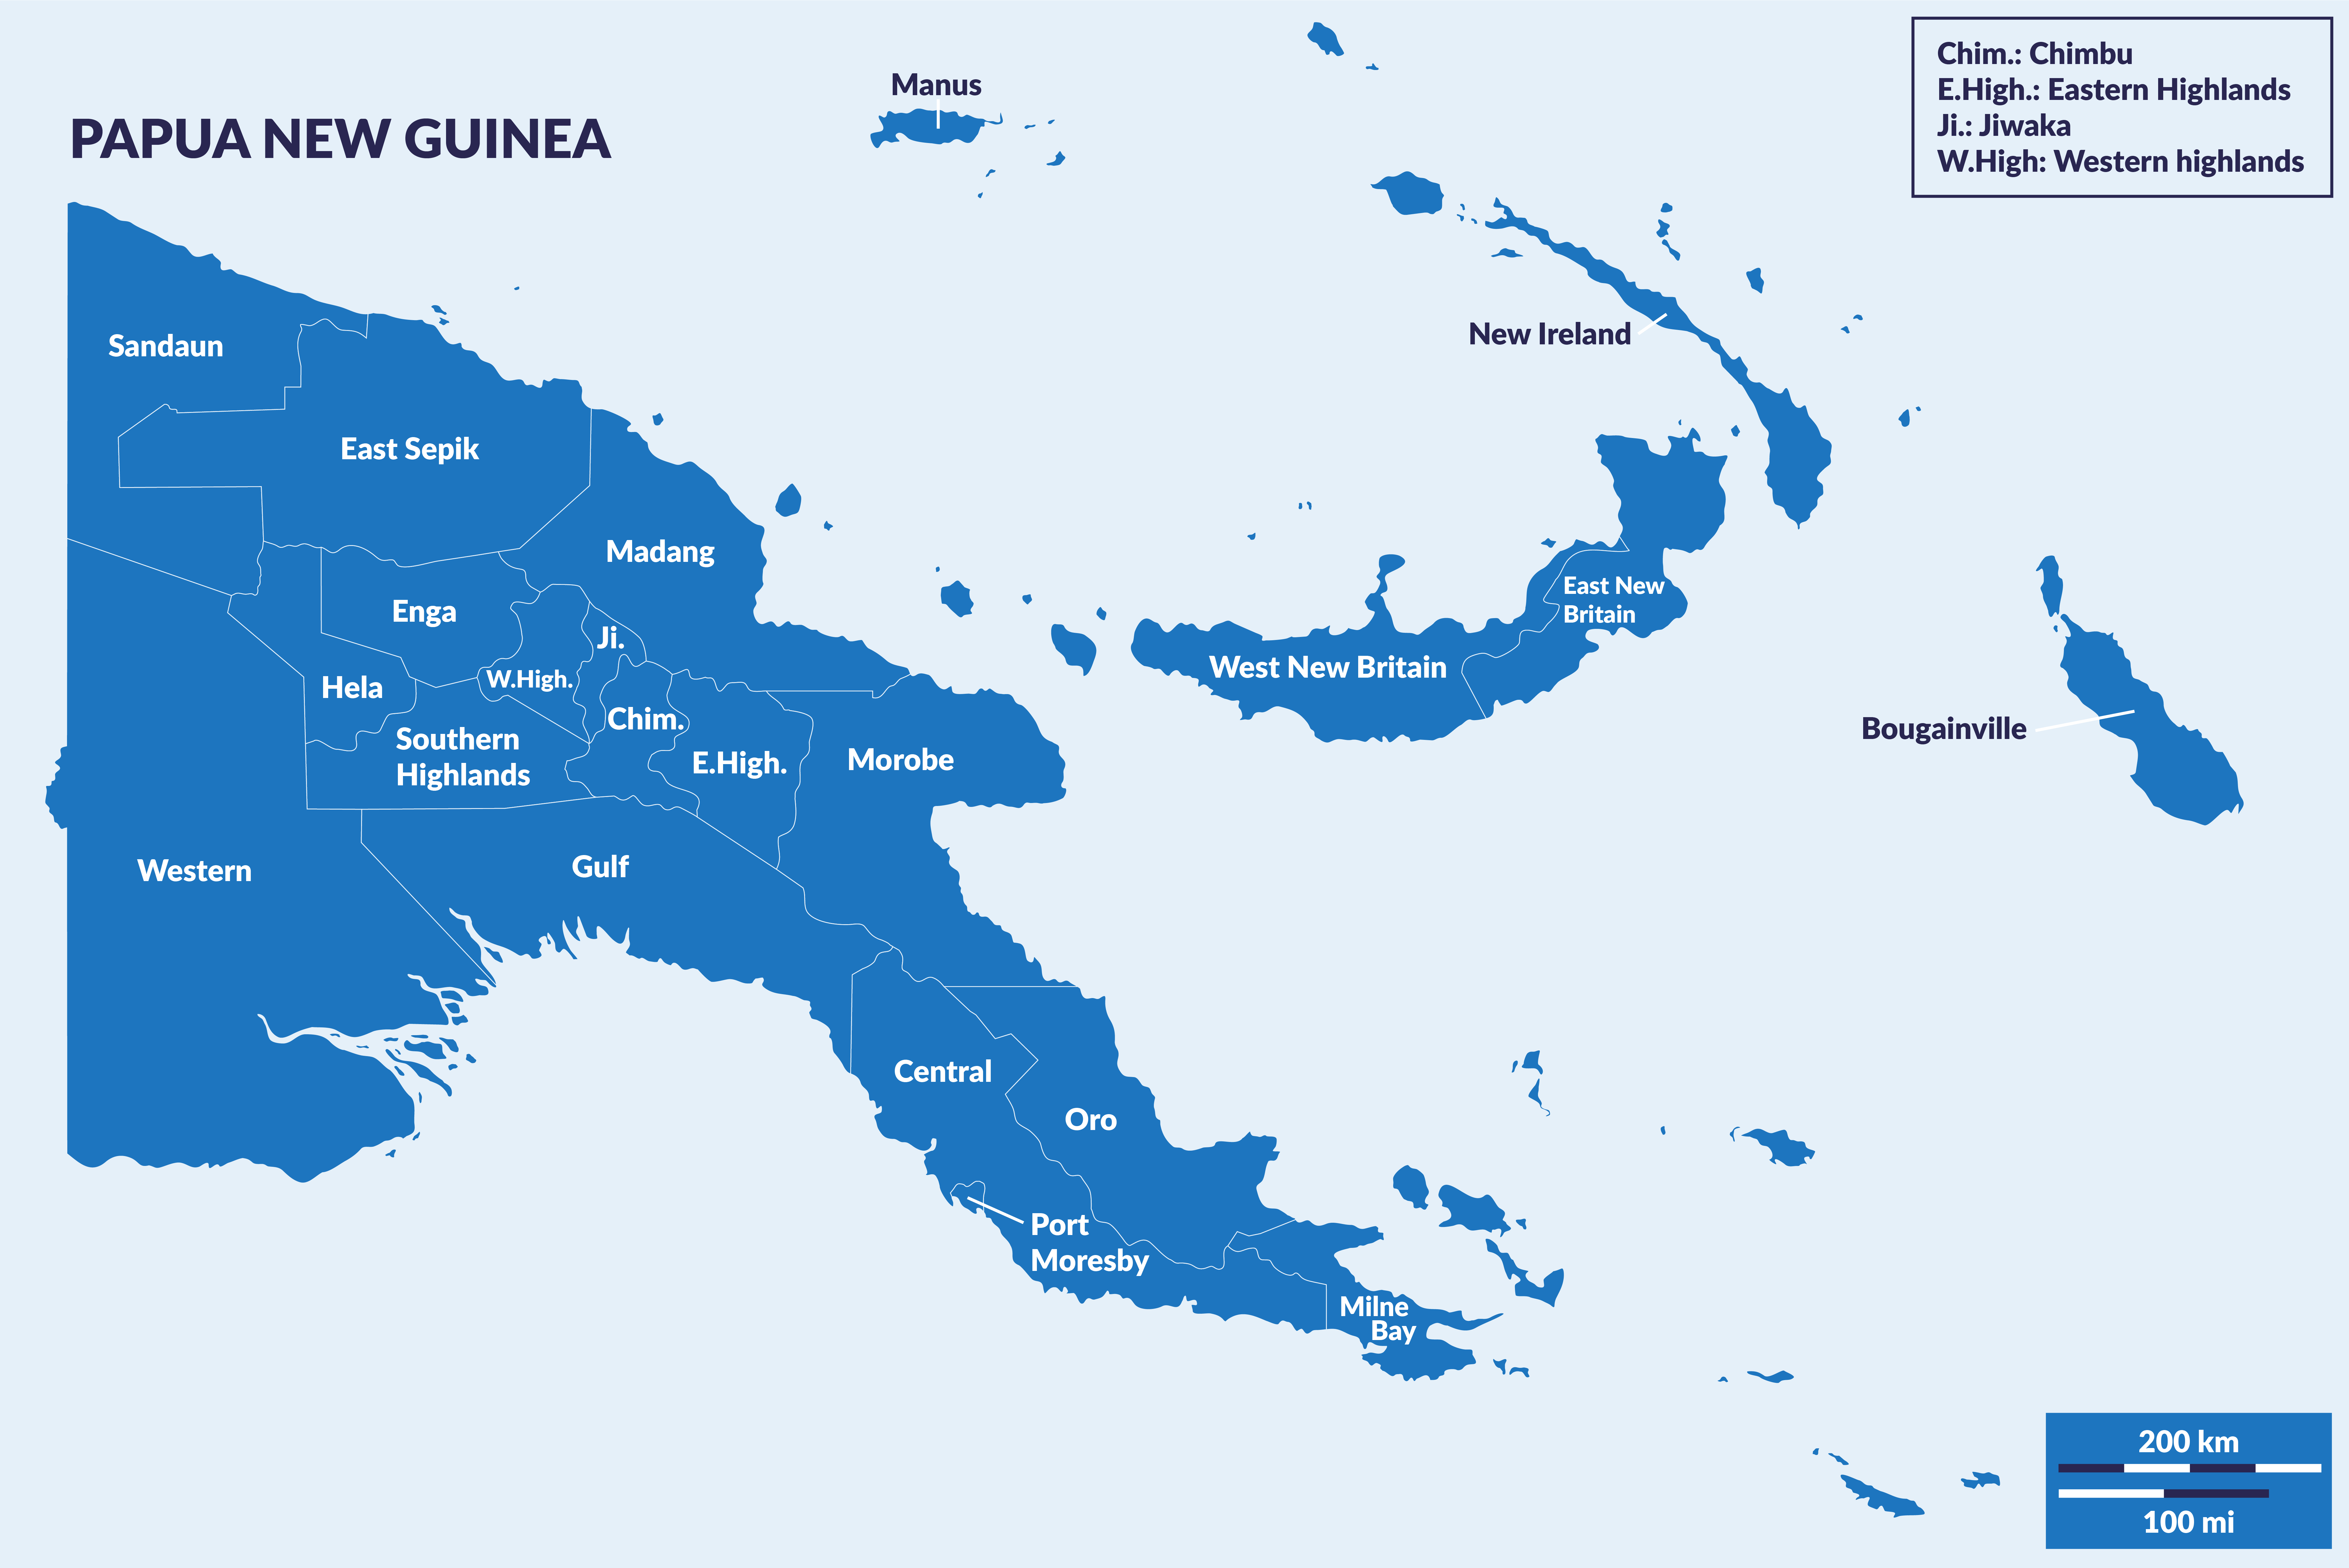 Map of Papua New Guinea's provinces